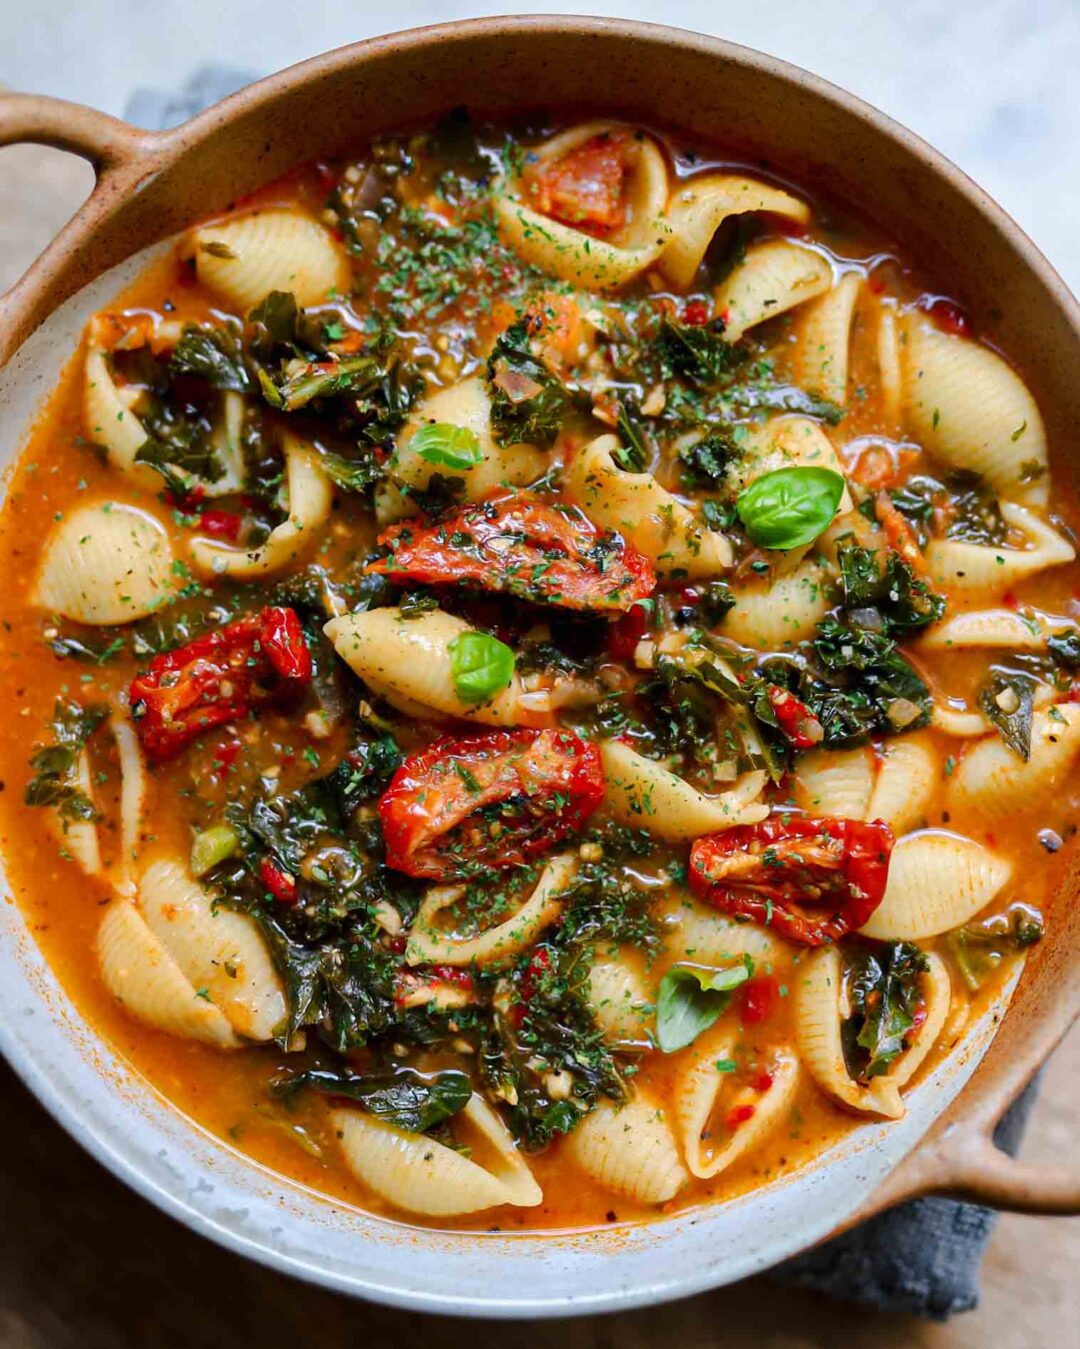 Sun Dried Tomato and Kale Pasta Soup